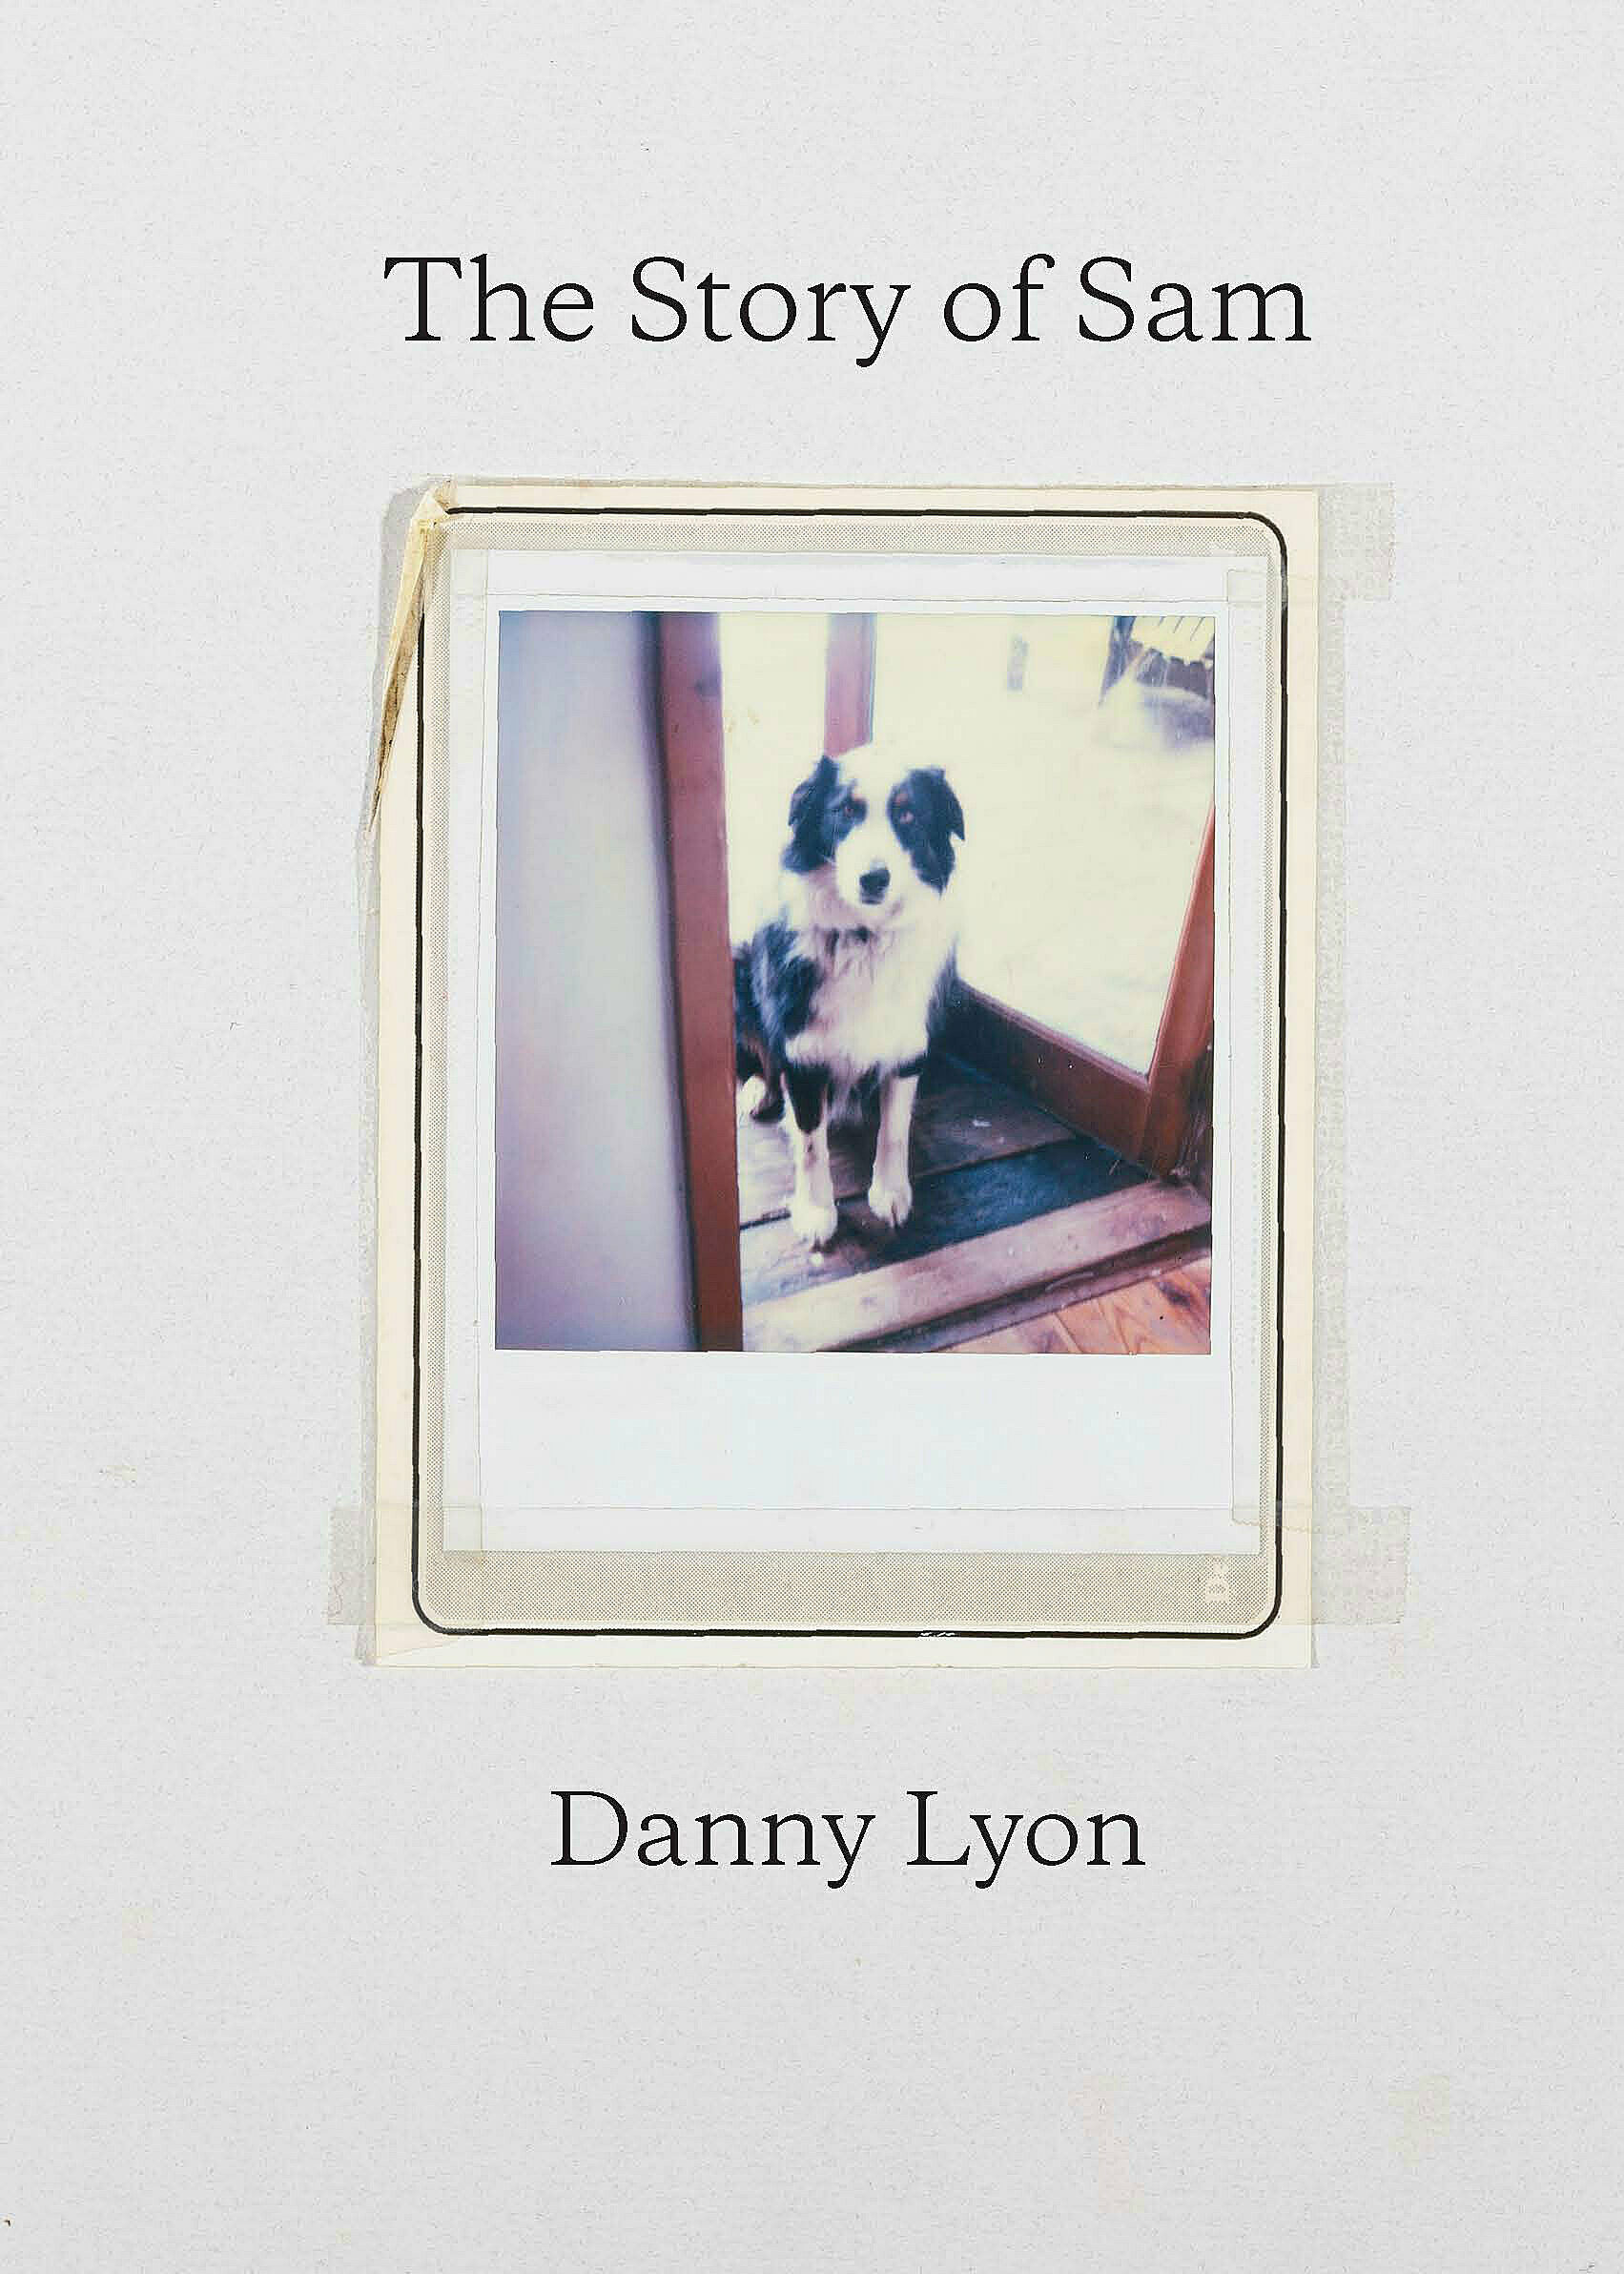 A book cover by Danny Lyon featuring his Australian Shepard dog Sam.